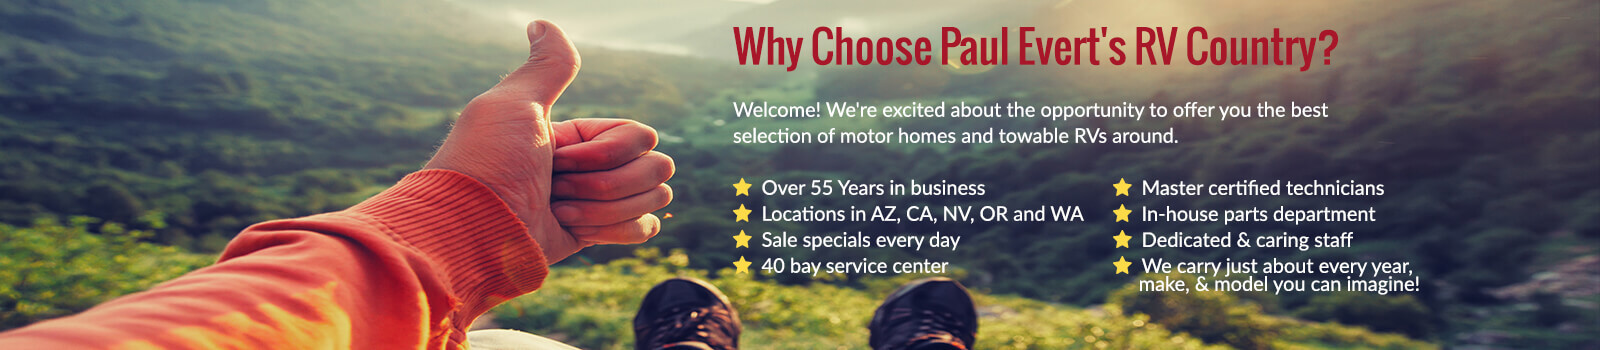 Why Choose Paul Evert's RV Country?